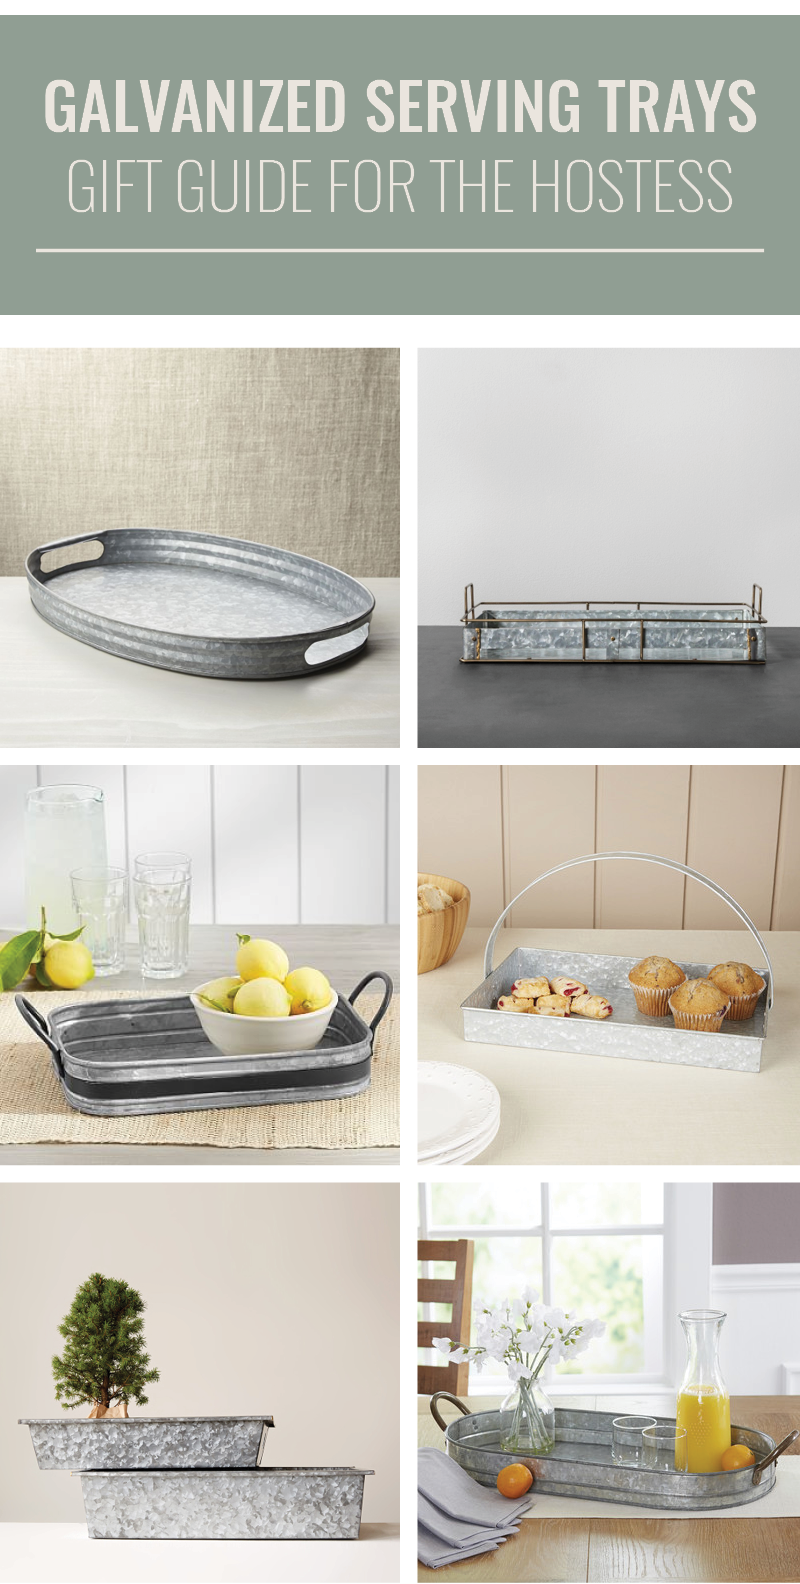 galvanized tray gift guide